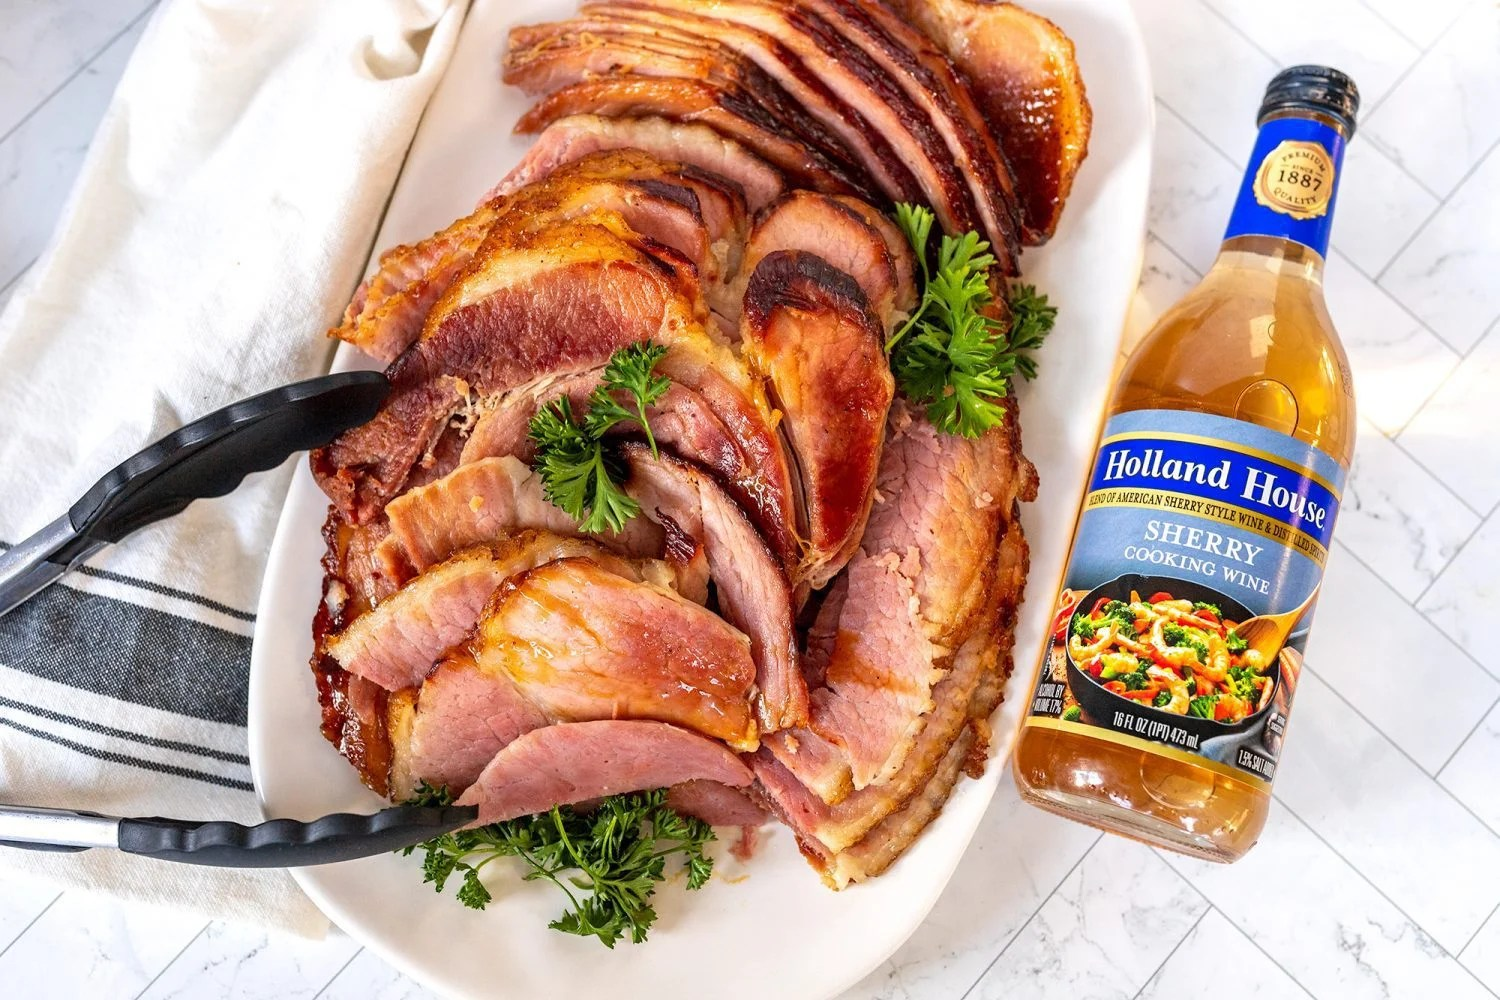 bottle of Holland House sherry wine next to sliced ham